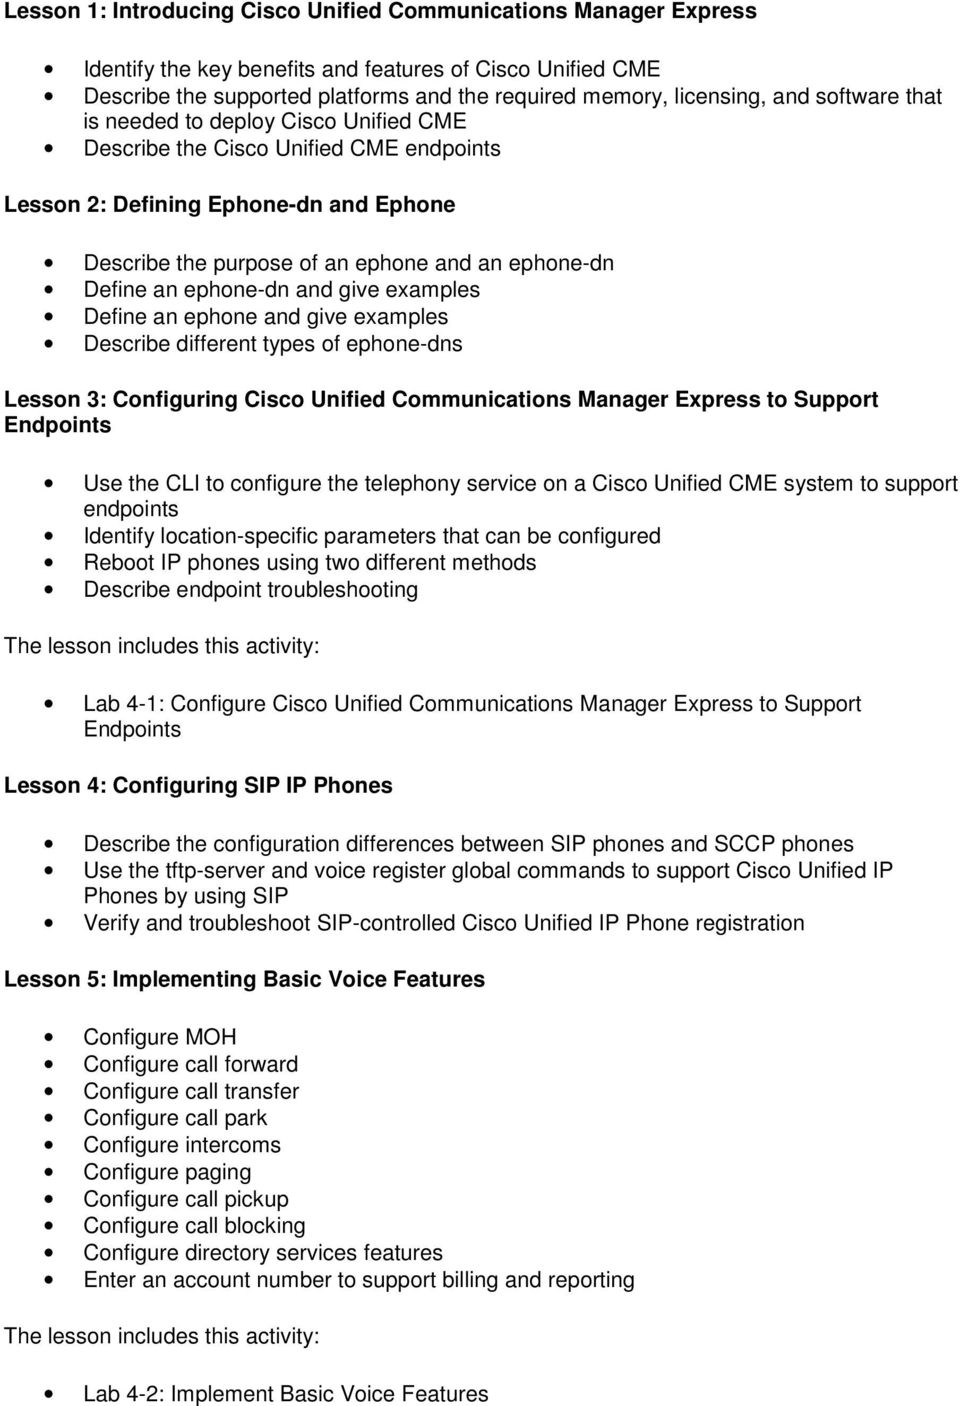 Implementing Cisco IOS Telephony and Unified Communications